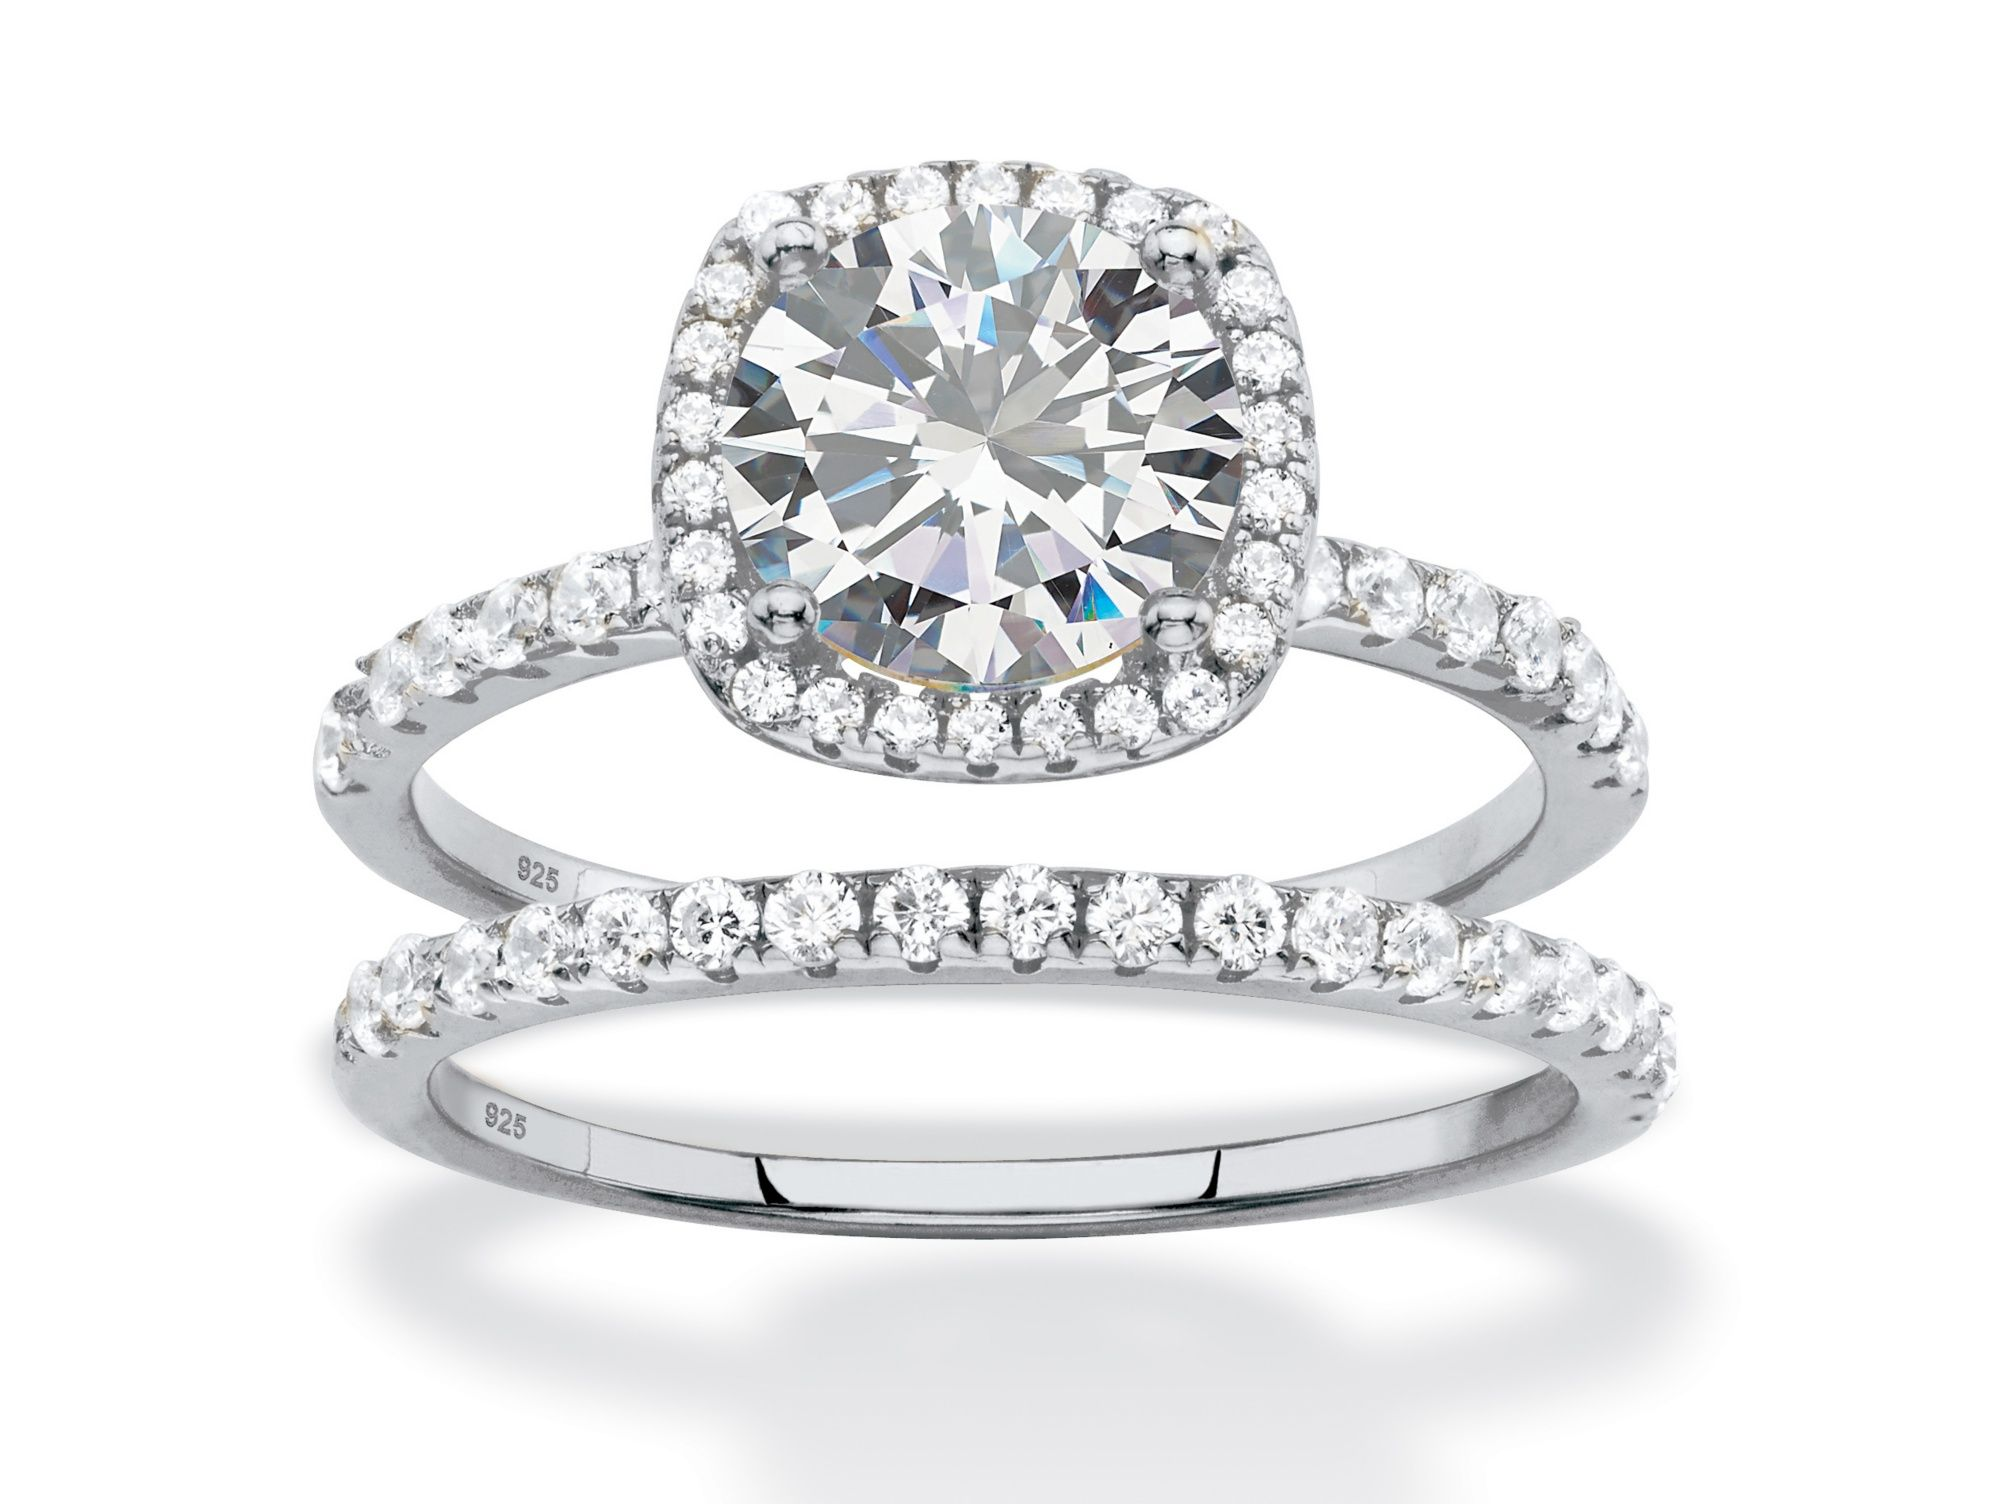 Jewelry in 2020 Wedding ring sets, Bridal wedding rings